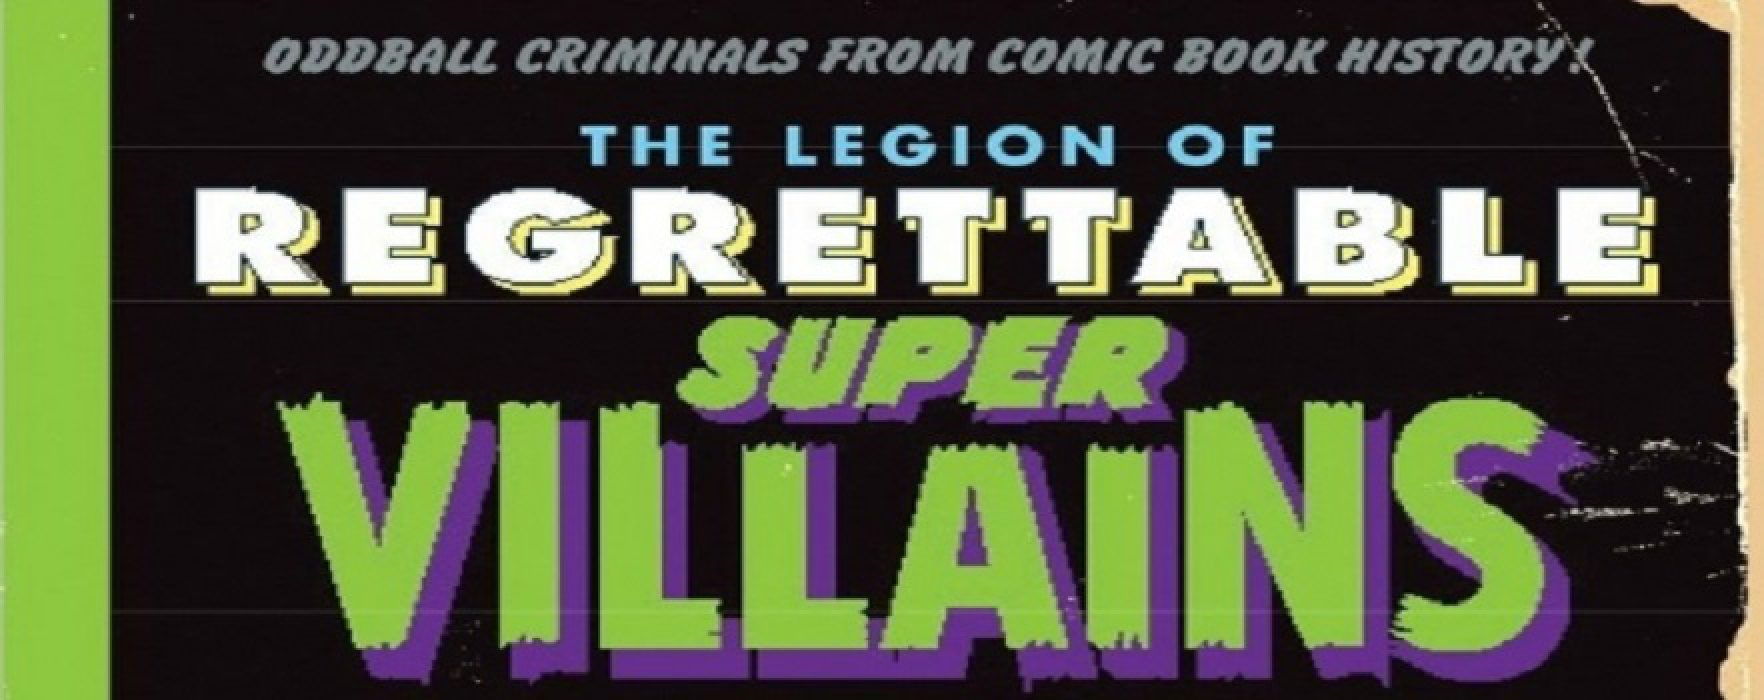 Read This: The Legion of Regrettable Supervillains